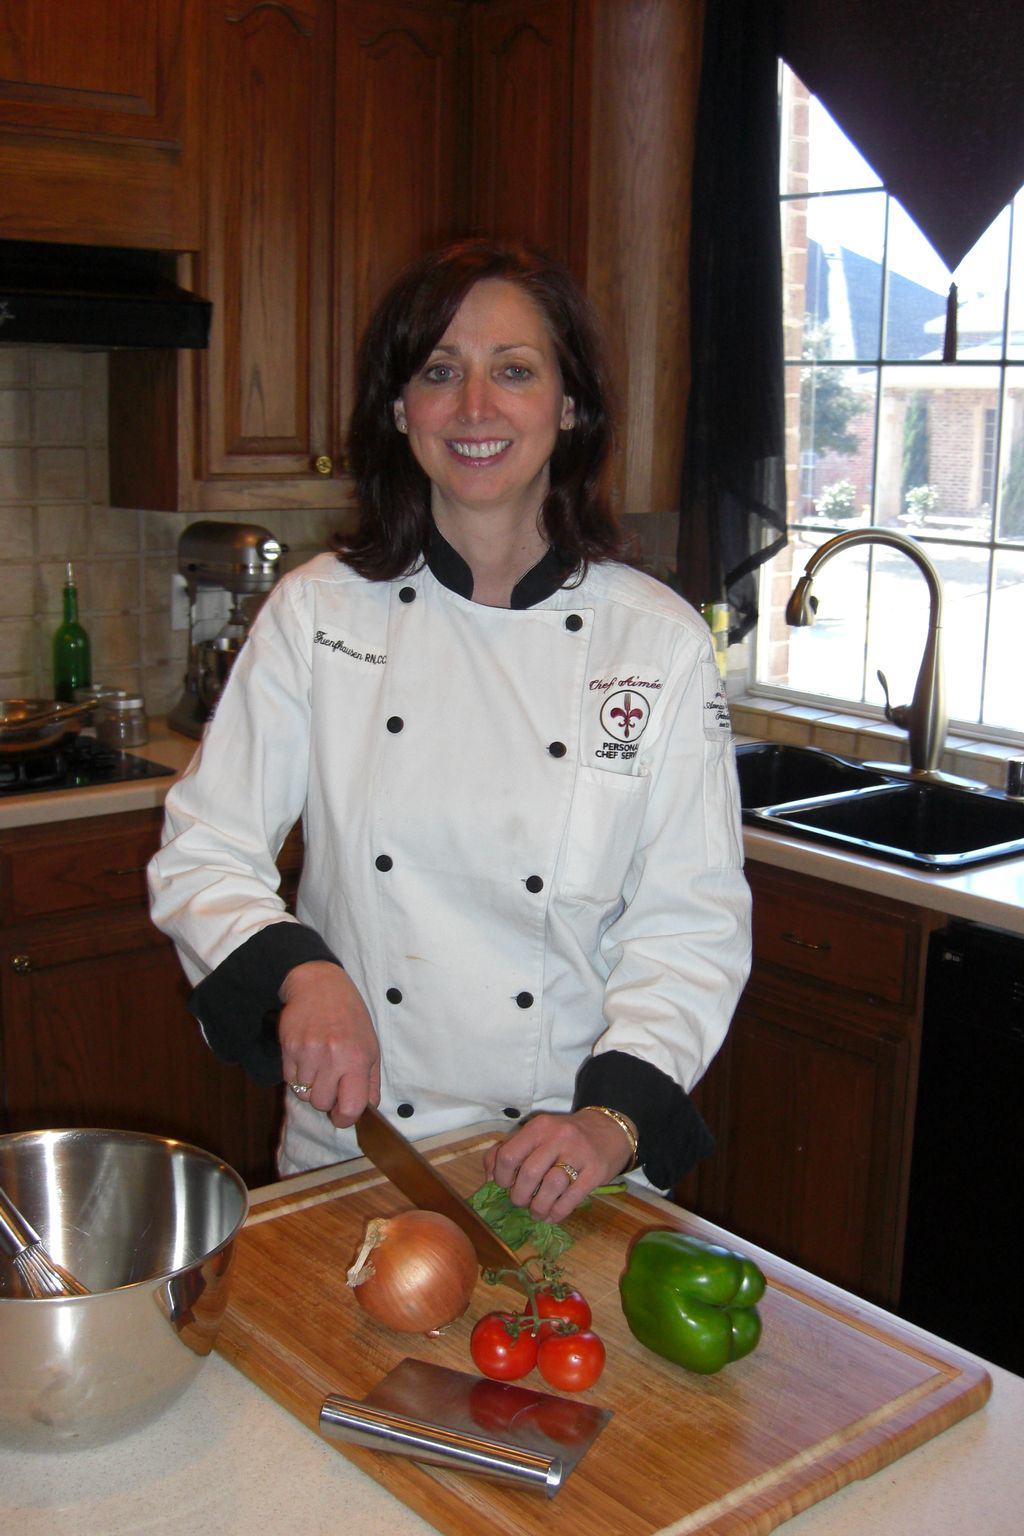 Chef Aimee's Personal Chef Service & Catering, LLC